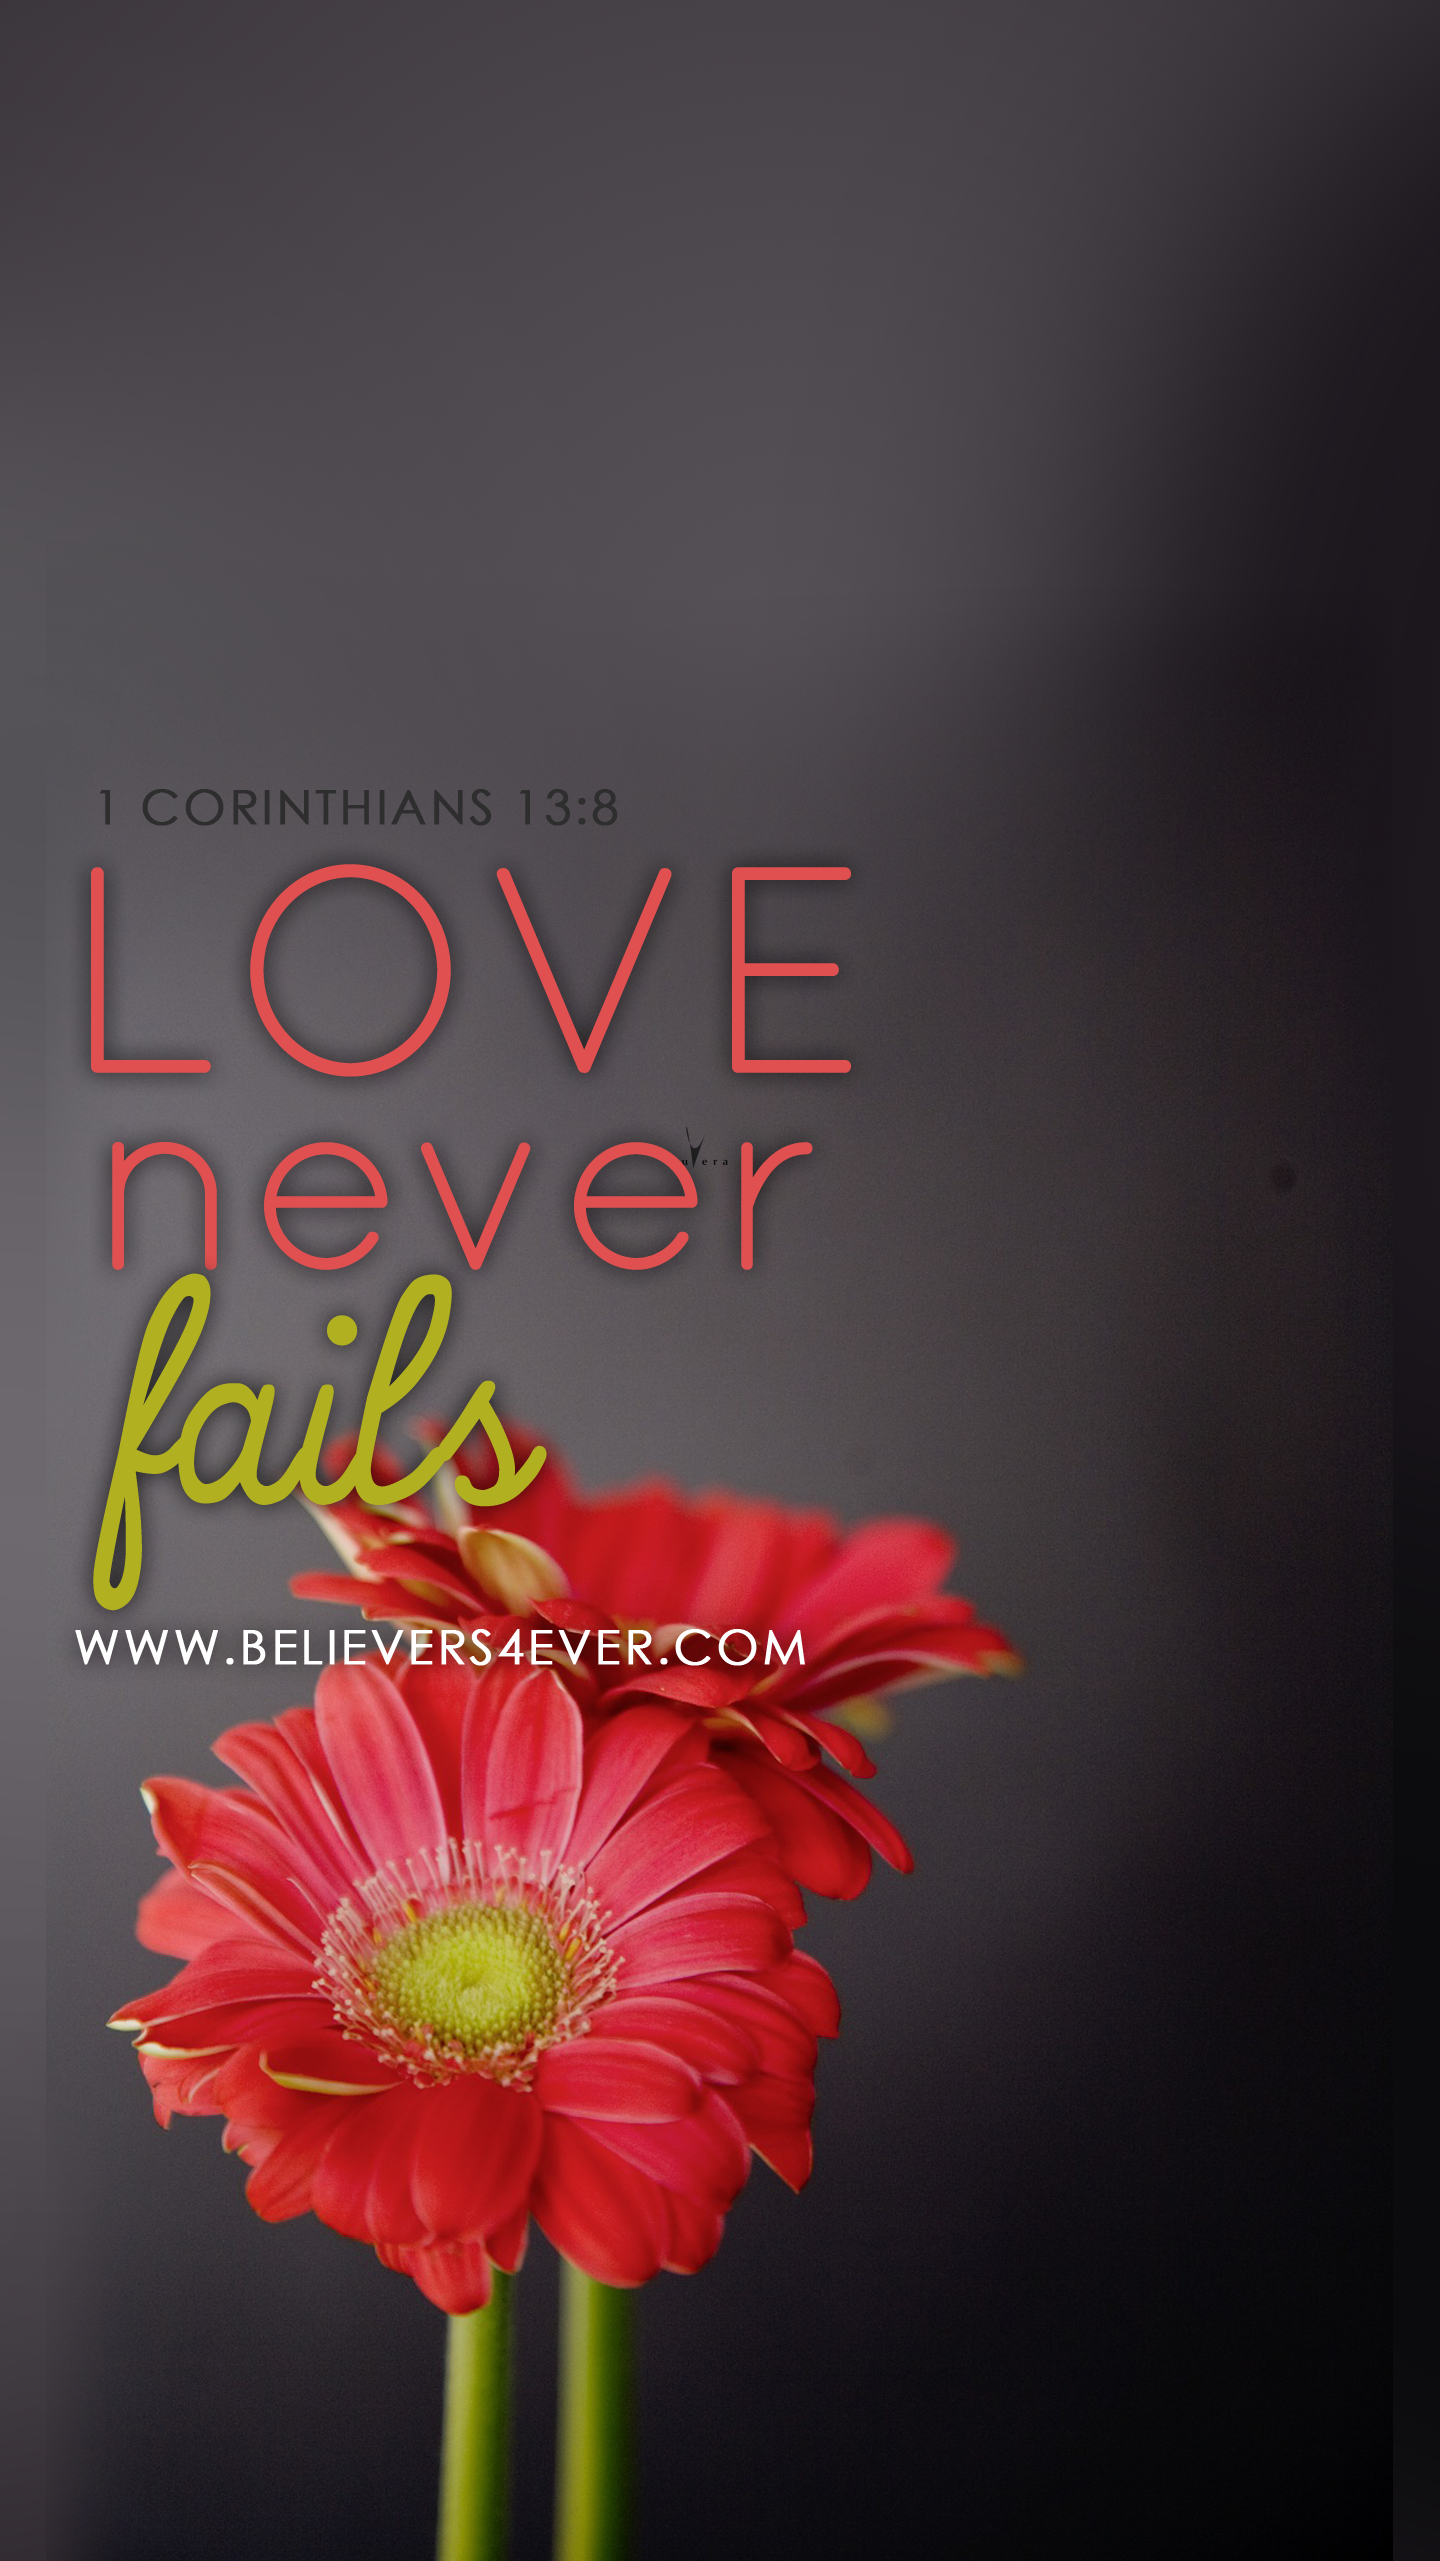 never fails 1 corinthians designed by kiran billa apple iphone galaxy note samsung galaxy phone with verse